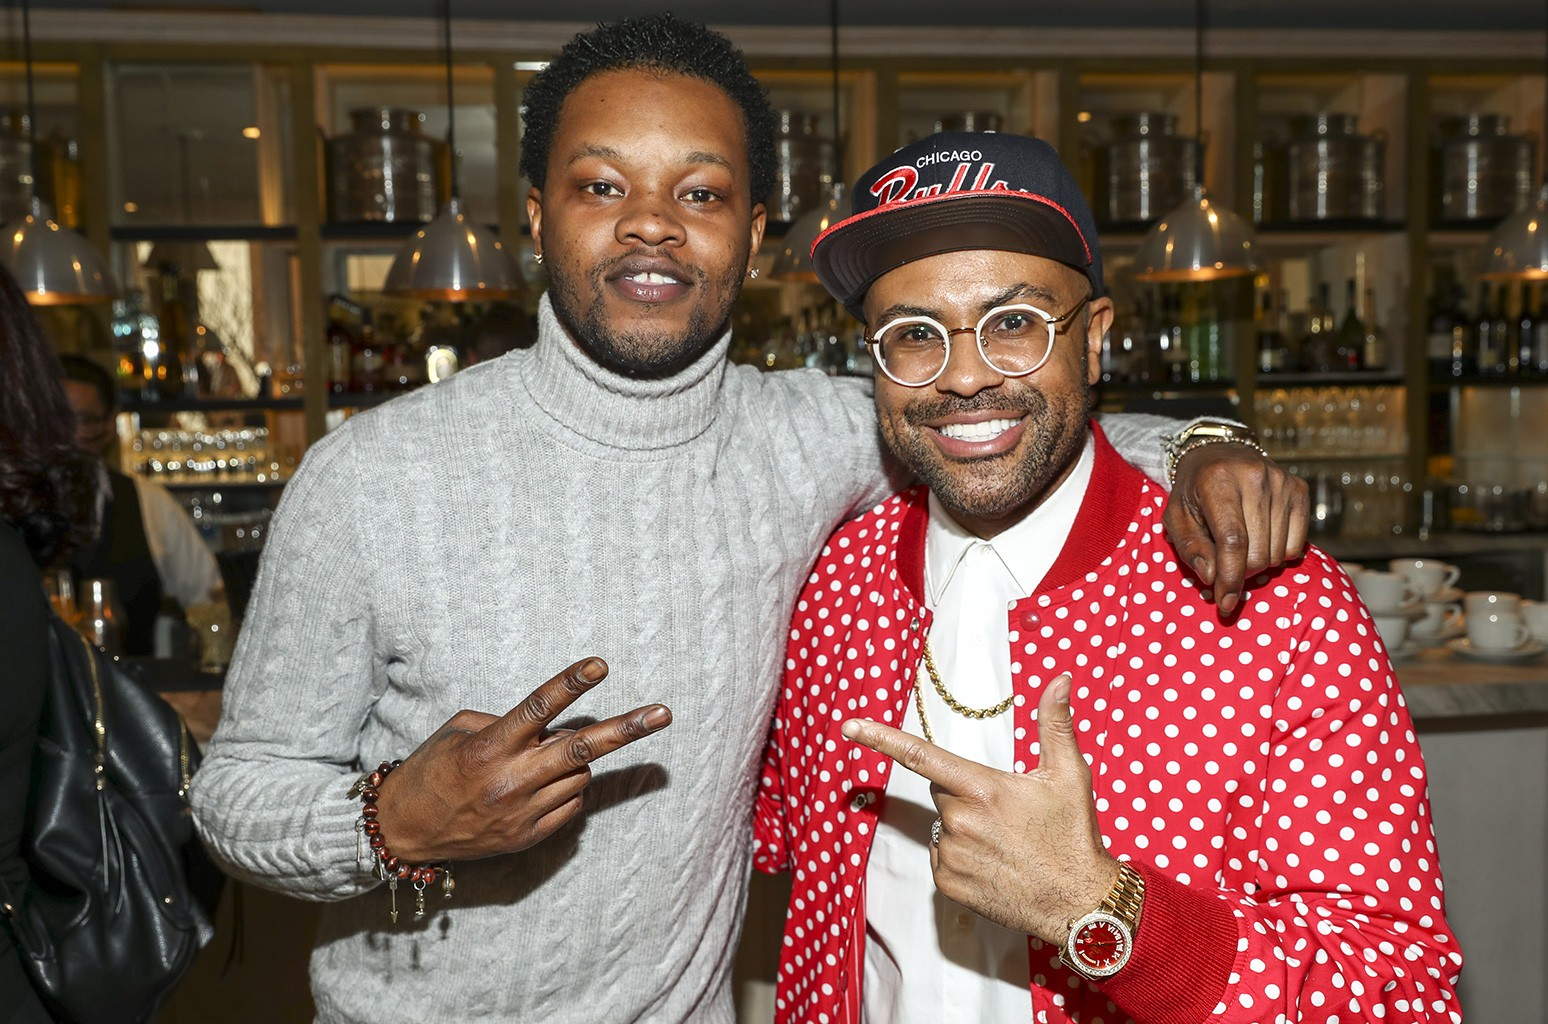 BJ the Chicago Kid and composer Philip Lawrence attend the 3rd Annual Los Angeles Chapter Nominee Brunch Celebration at Fig & Olive on Jan. 28, 2017 in West Hollywood, Calif.